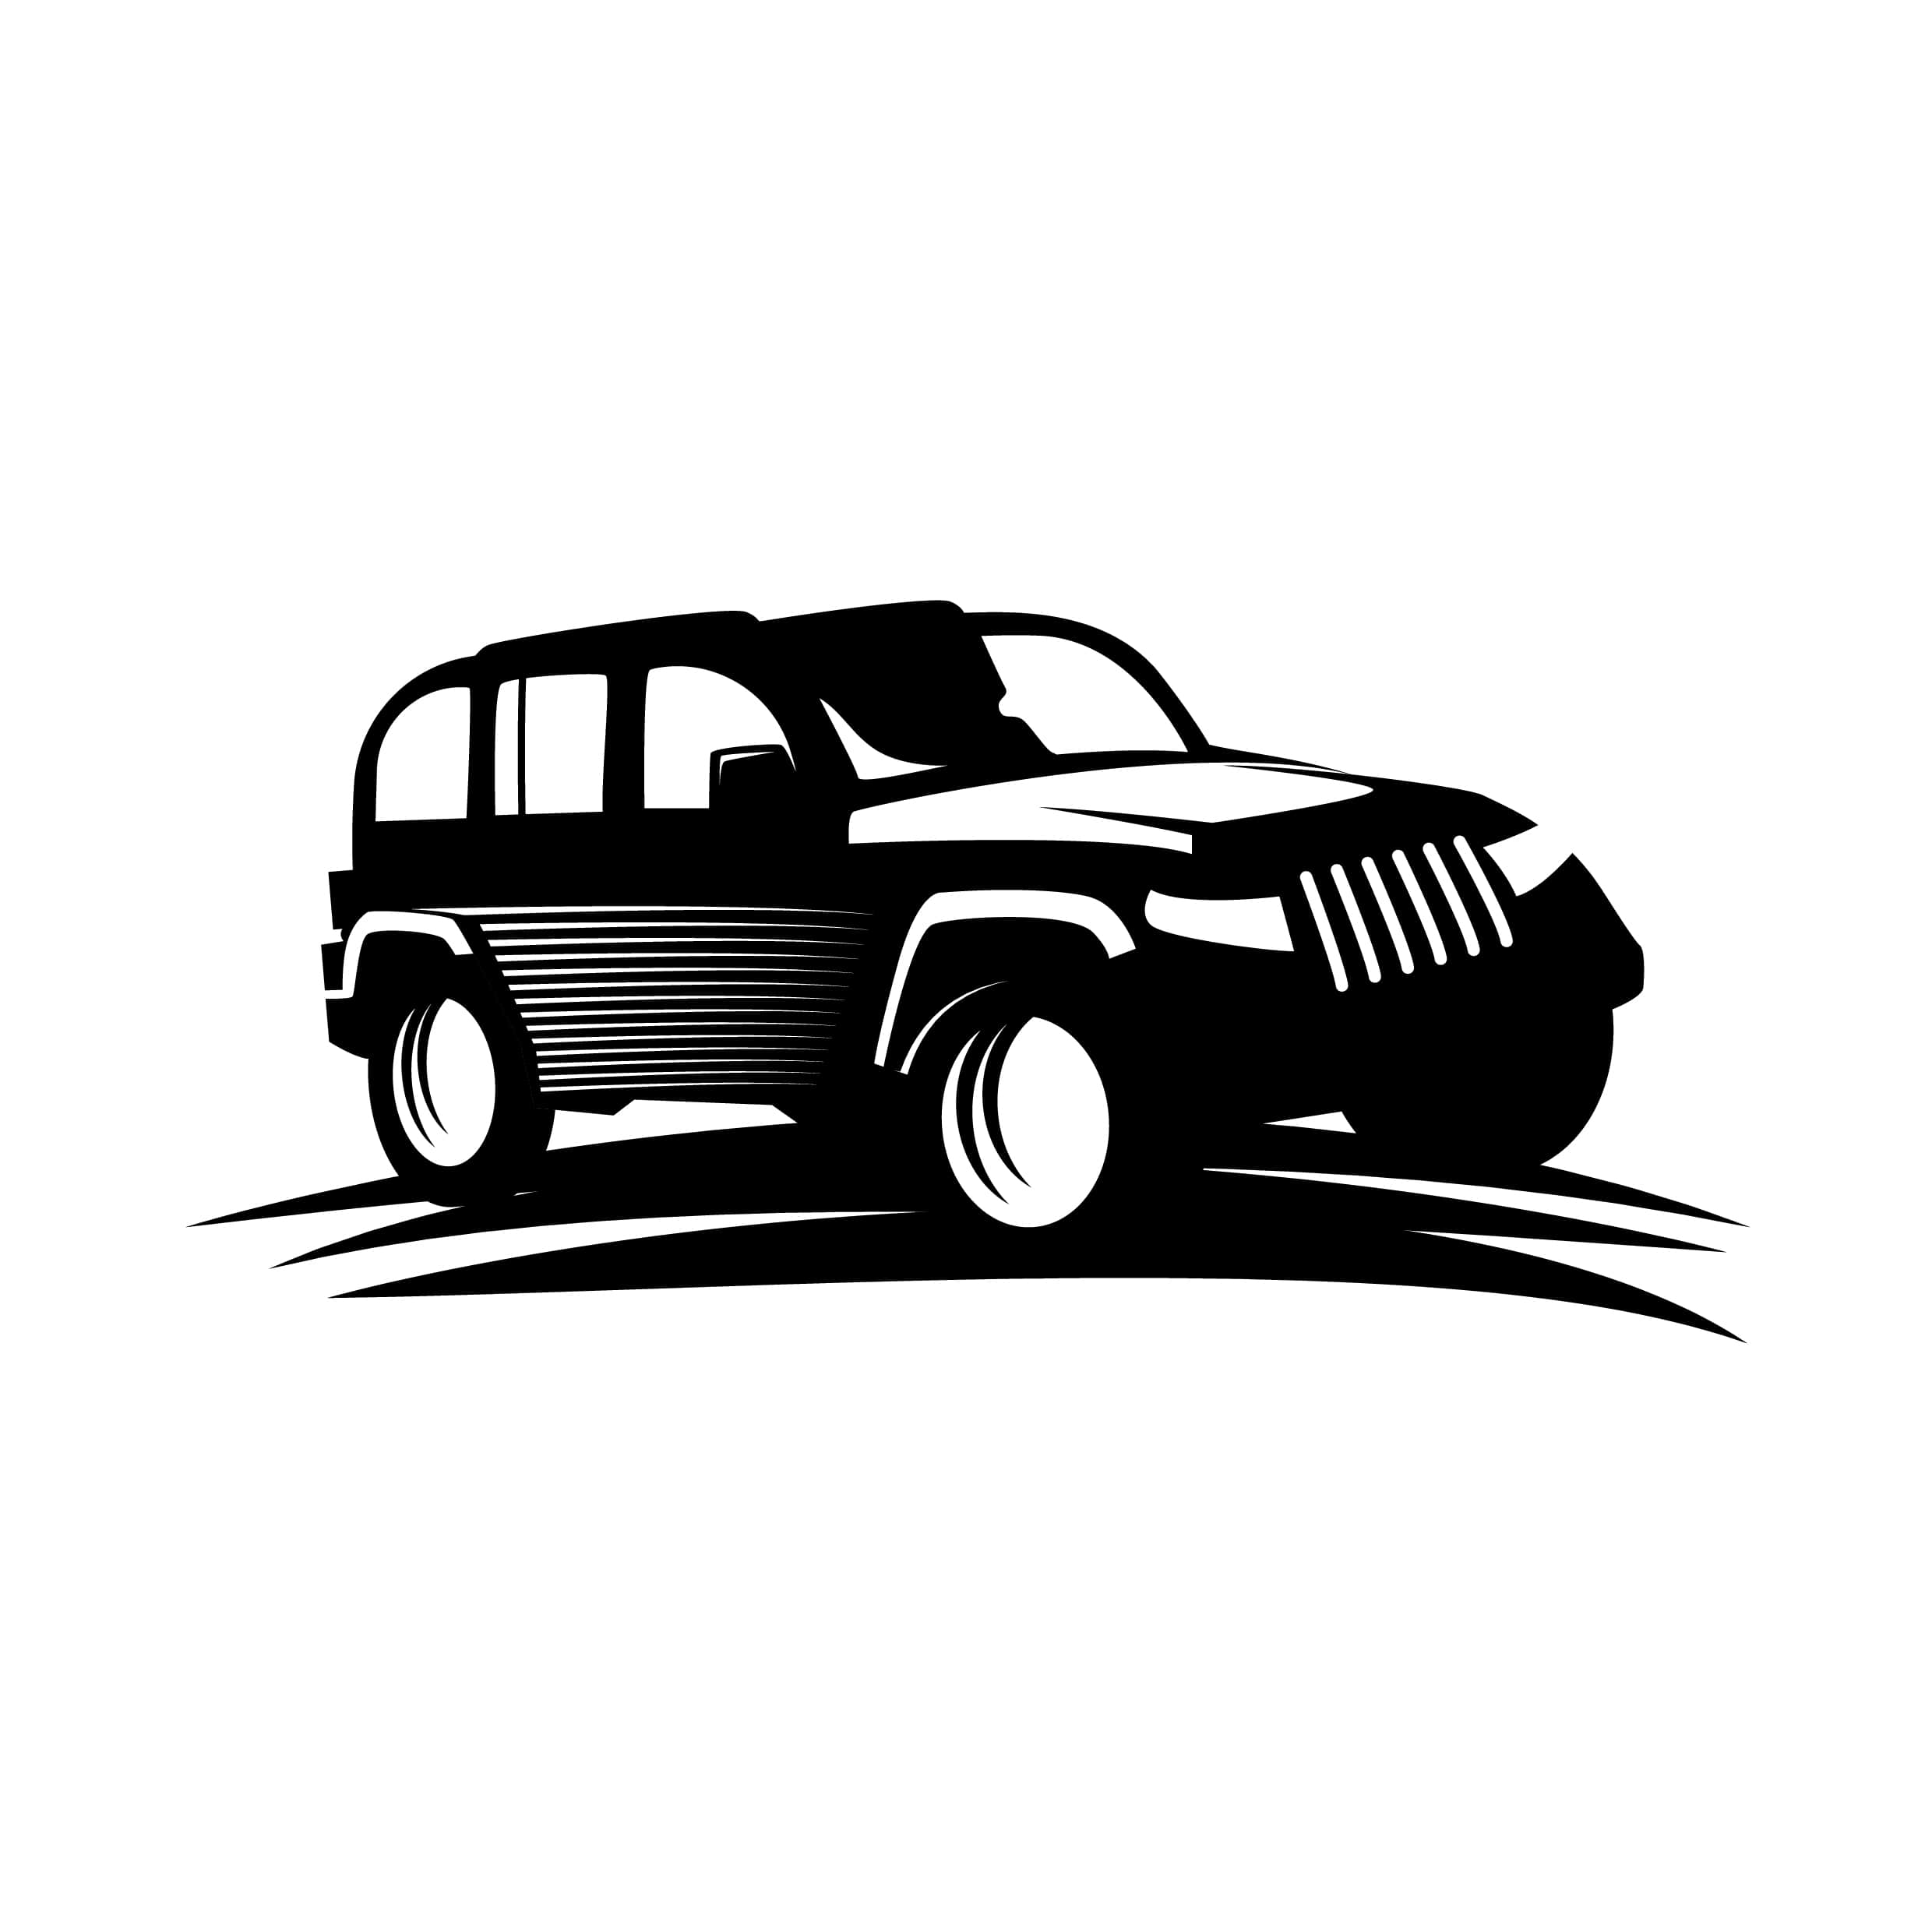 stickers-jeep-ref30-autocollant-4x4-sticker-suv-off-road-autocollants-decals-sponsors-tuning-rallye-voiture-logo-min